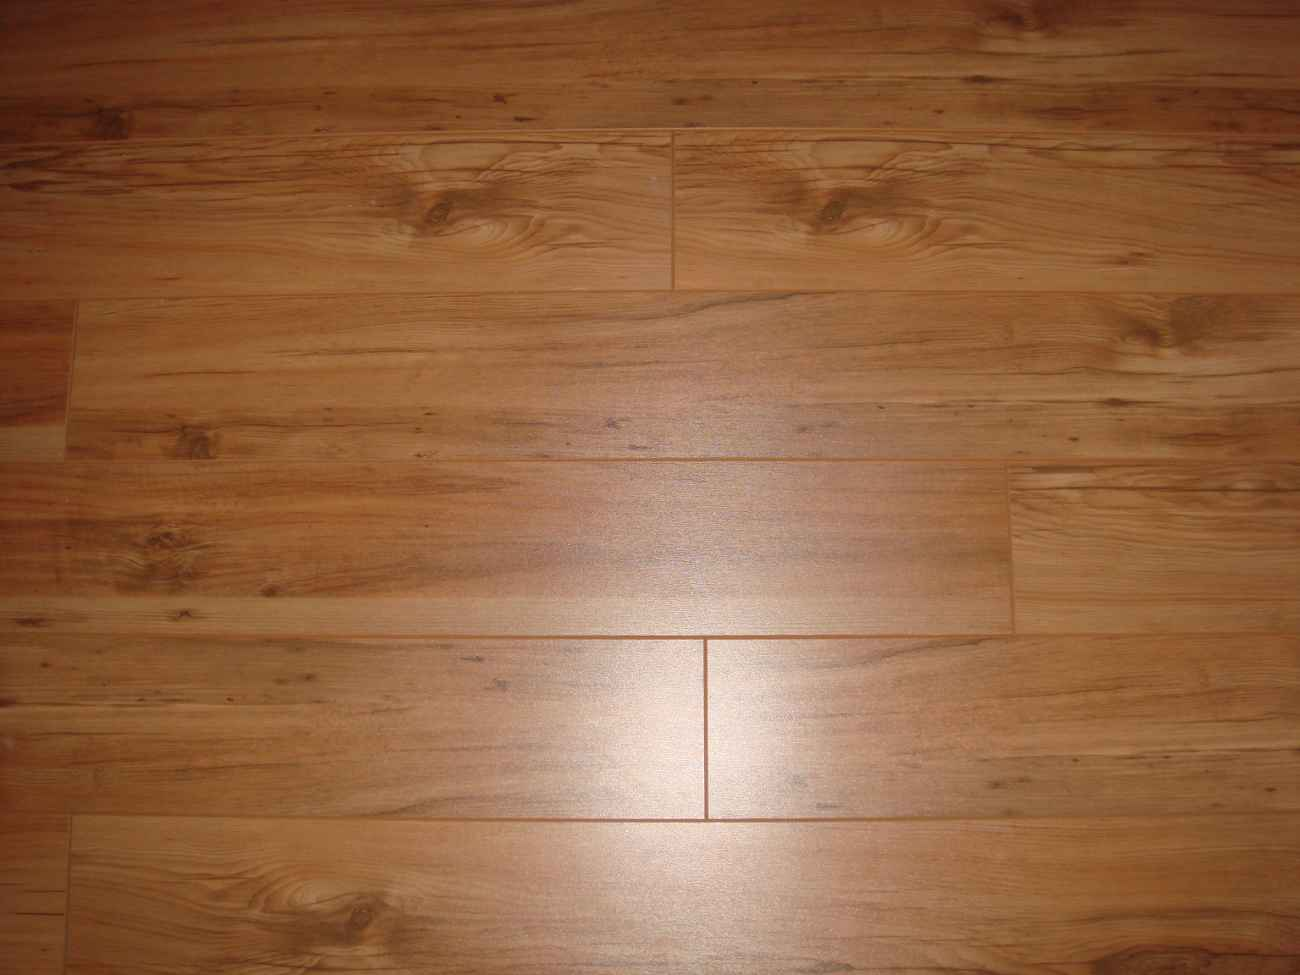 Wooden ceramic tile floors Porcelain tile flooring